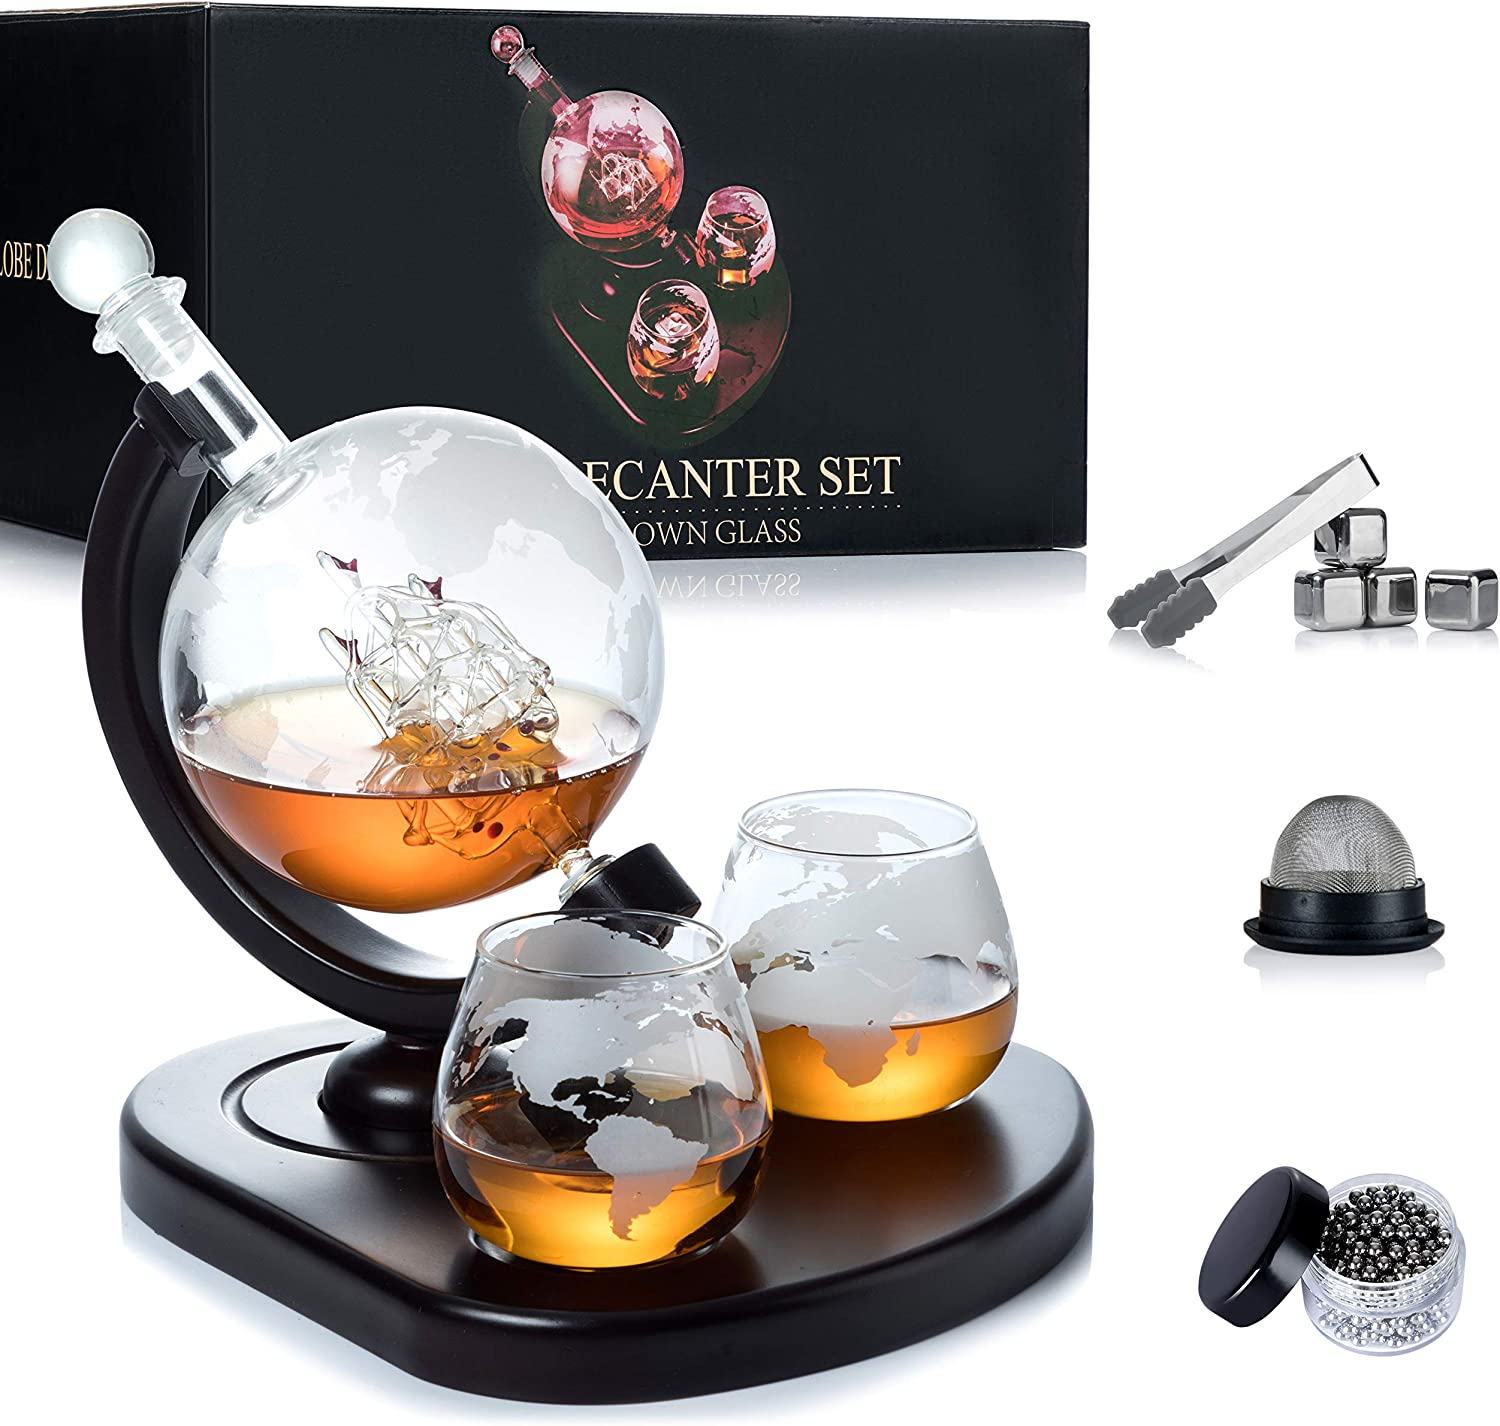 Weebng Whiskey Decanter Set Globe Wine Decanter Set With 2 Glasses Cleaning Beads 4 Stainless Steel Ice Cubes And Ice Tong Beverage Drink Liquor Dispenser Gift Set For Liquor Scotch Bourb Amazon Ca Home Kitchen